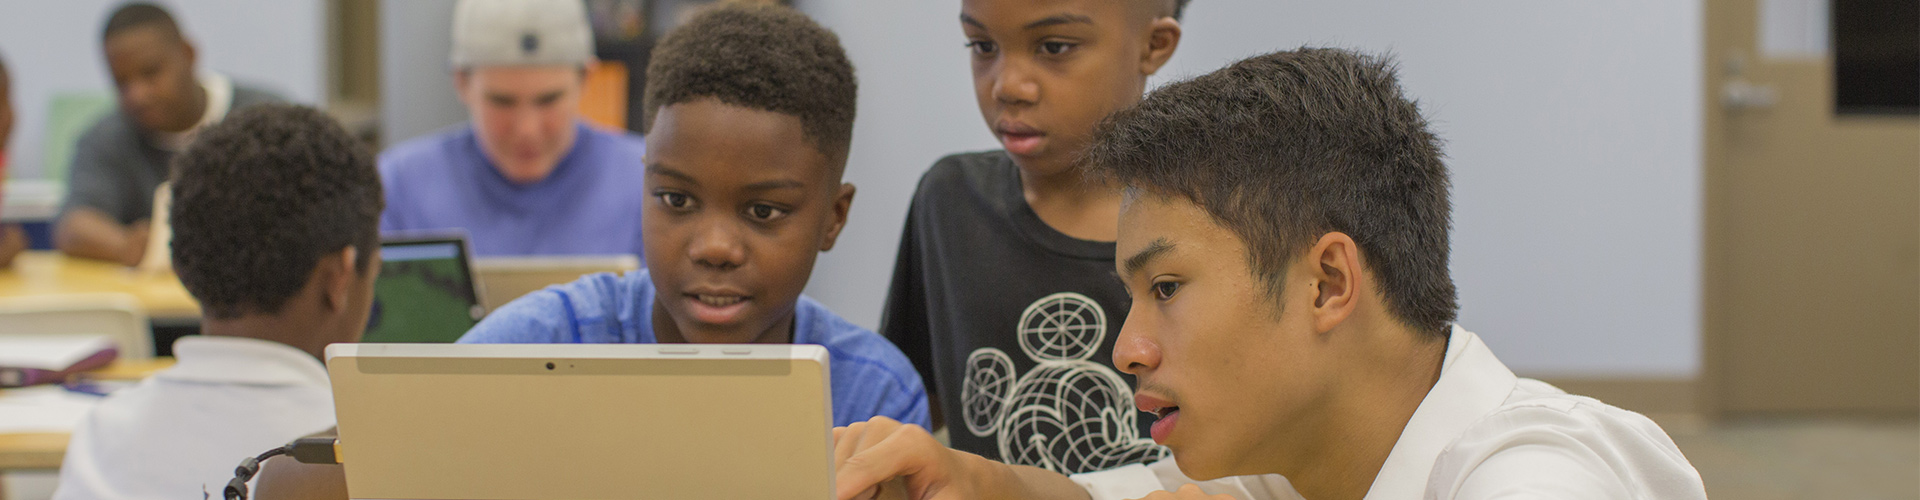 Lifestyle photo of students interacting and playing Minecraft: Education Edition on shared a computer.